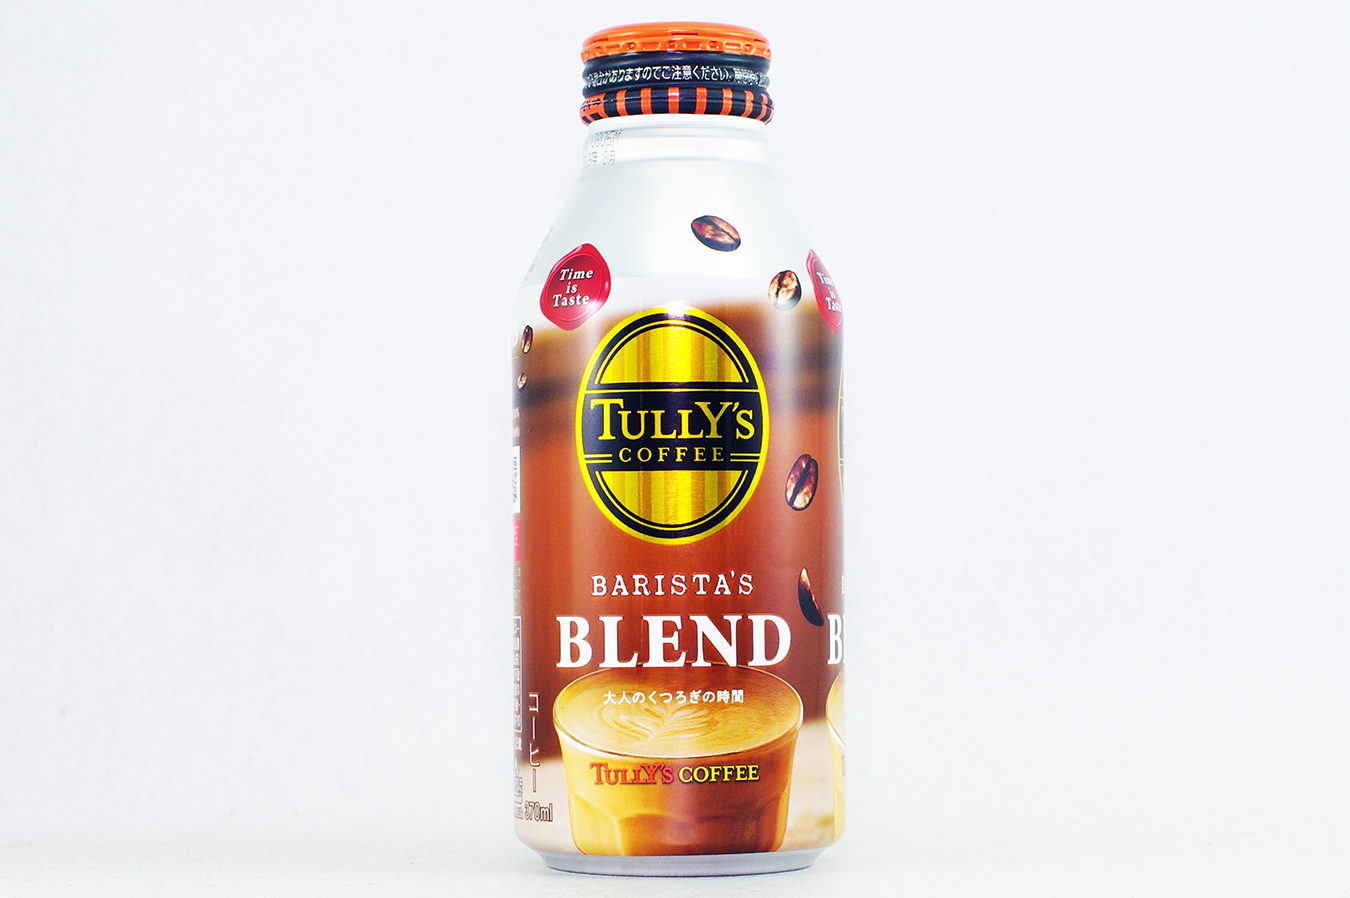 TULLY'S COFFEE BARISTA'S BLEND 2018年10月